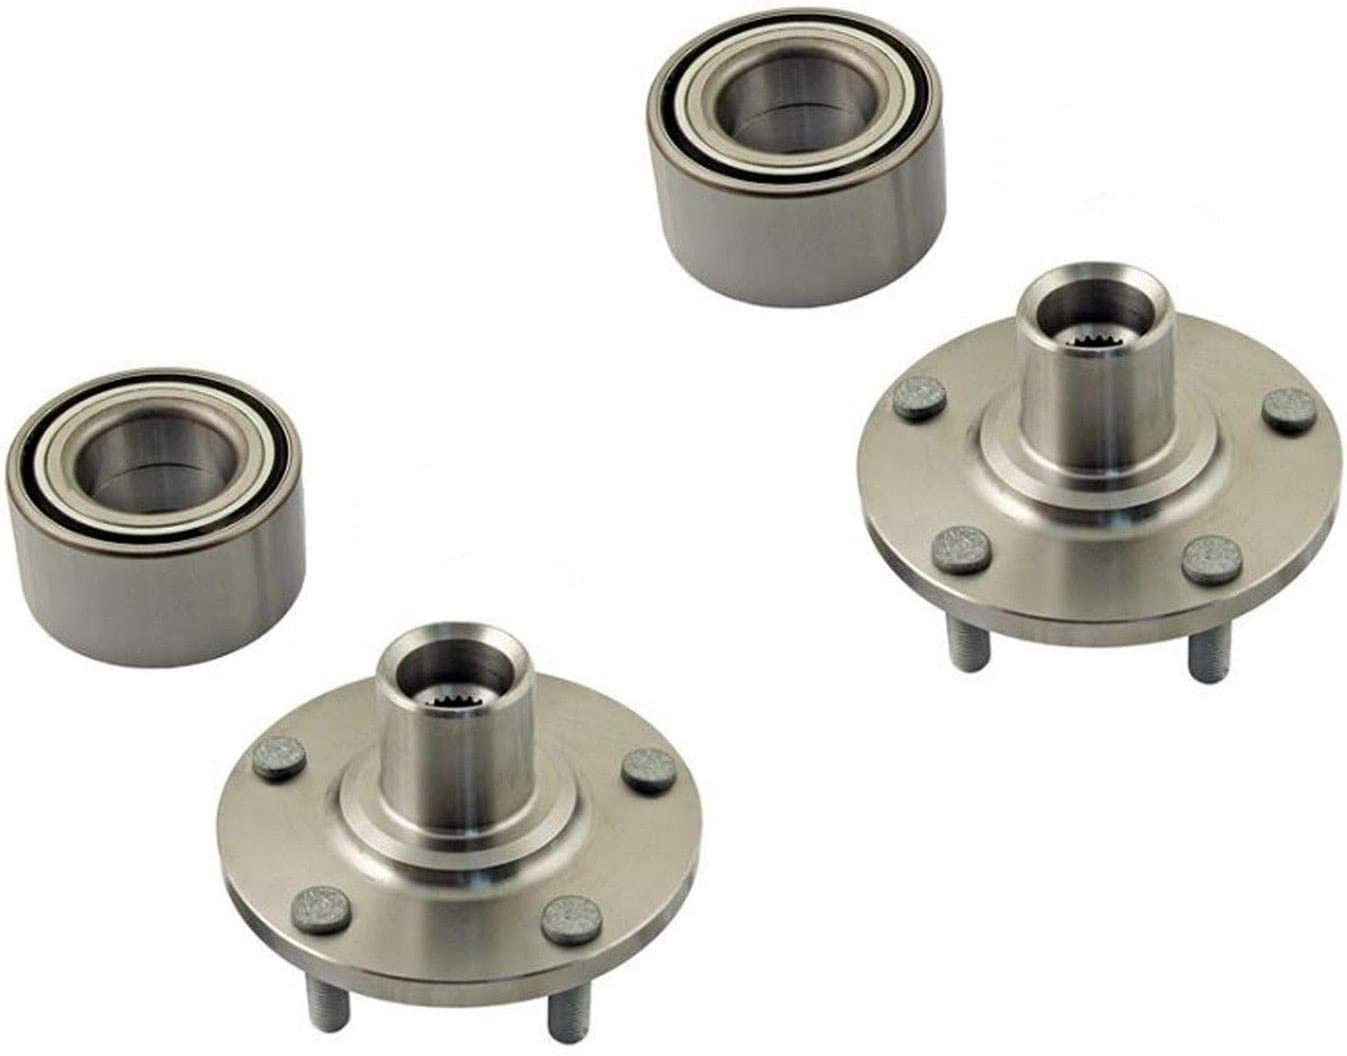 Replaces Hub81 510110 2 DTA Front Wheel Hub Wheel Bearing Repair Kits Left and Right Compatible with 2012-2018 Ford Focus C-Max